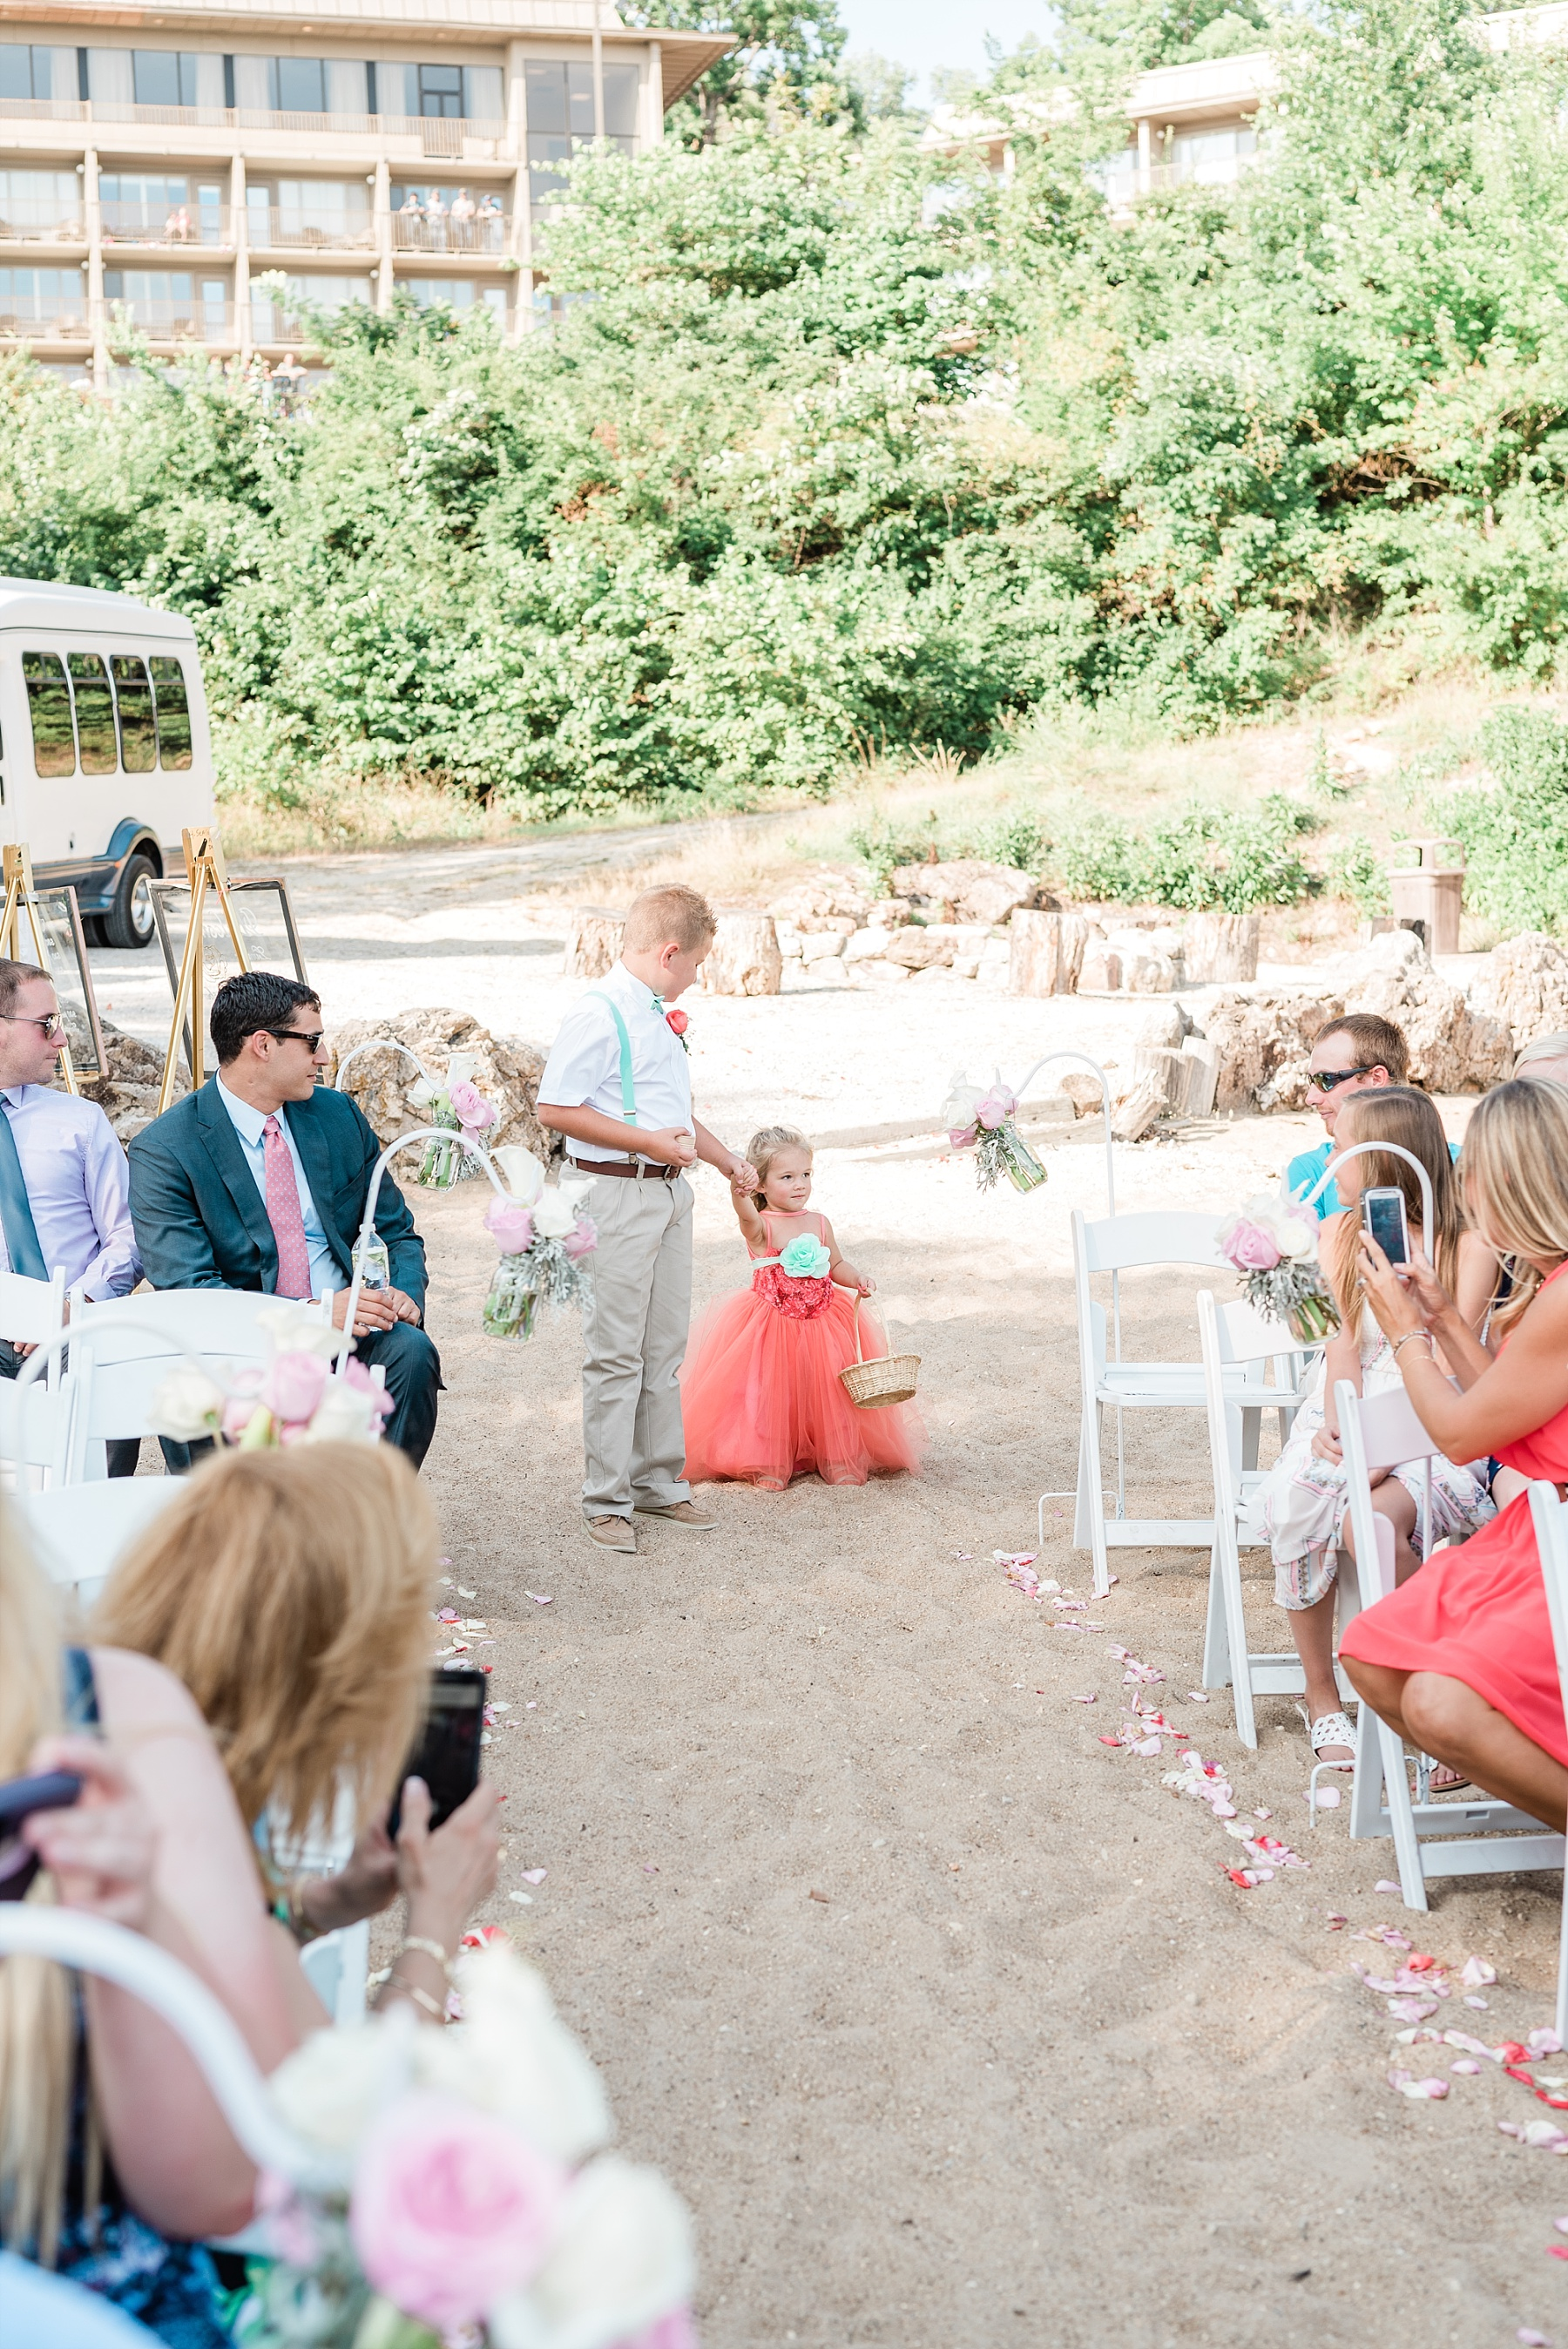 Beachside Sunset Wedding At Lodge Of Four Seasons At Lake Of The Ozarks By Kelsi Kliethermes Photography_0016.jpg